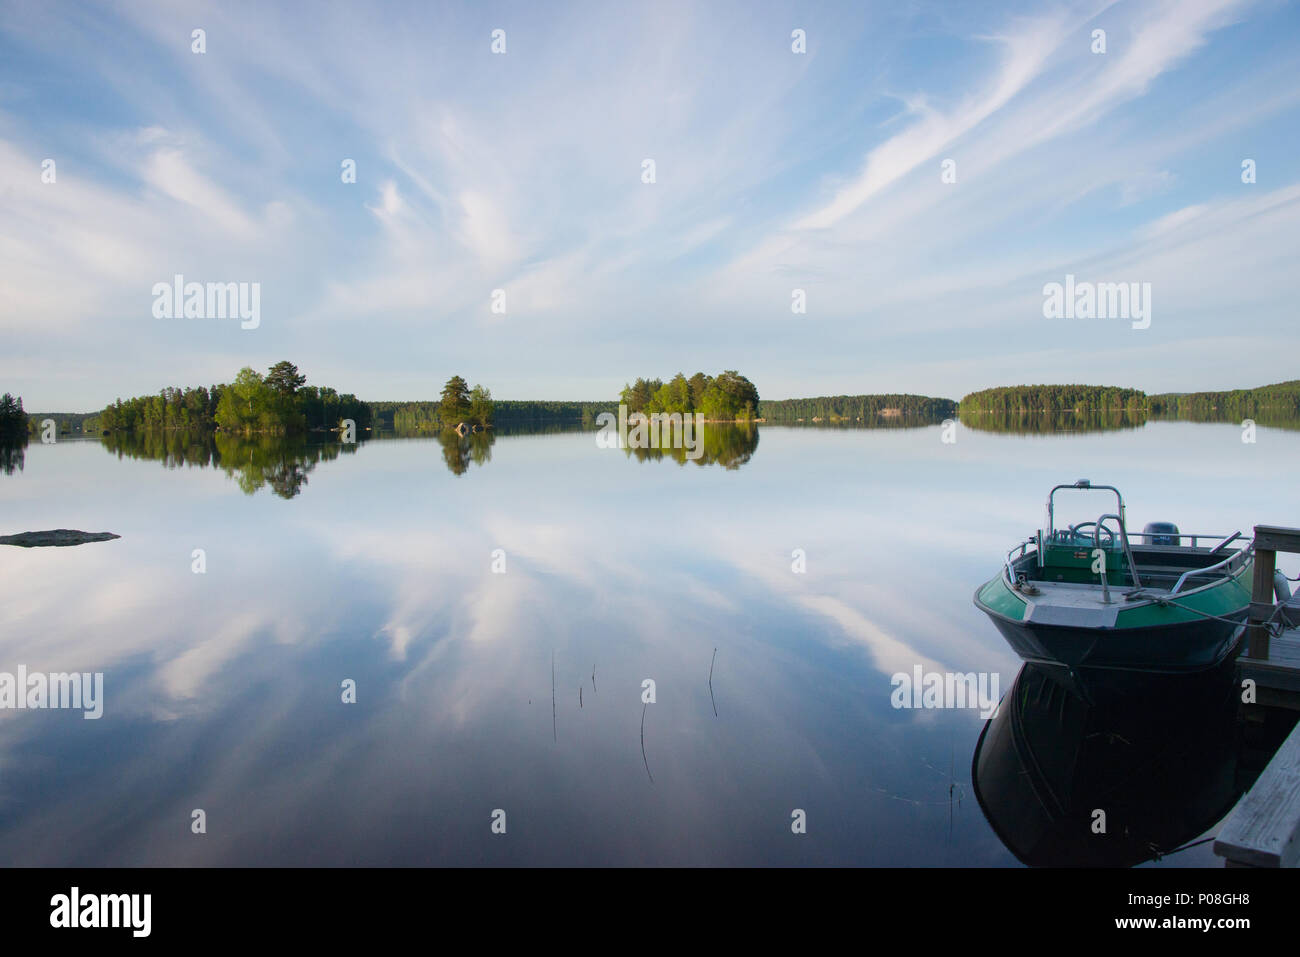 Cloud reflections. Lake Kukkia, Luopioinen, Finland. - Stock Image